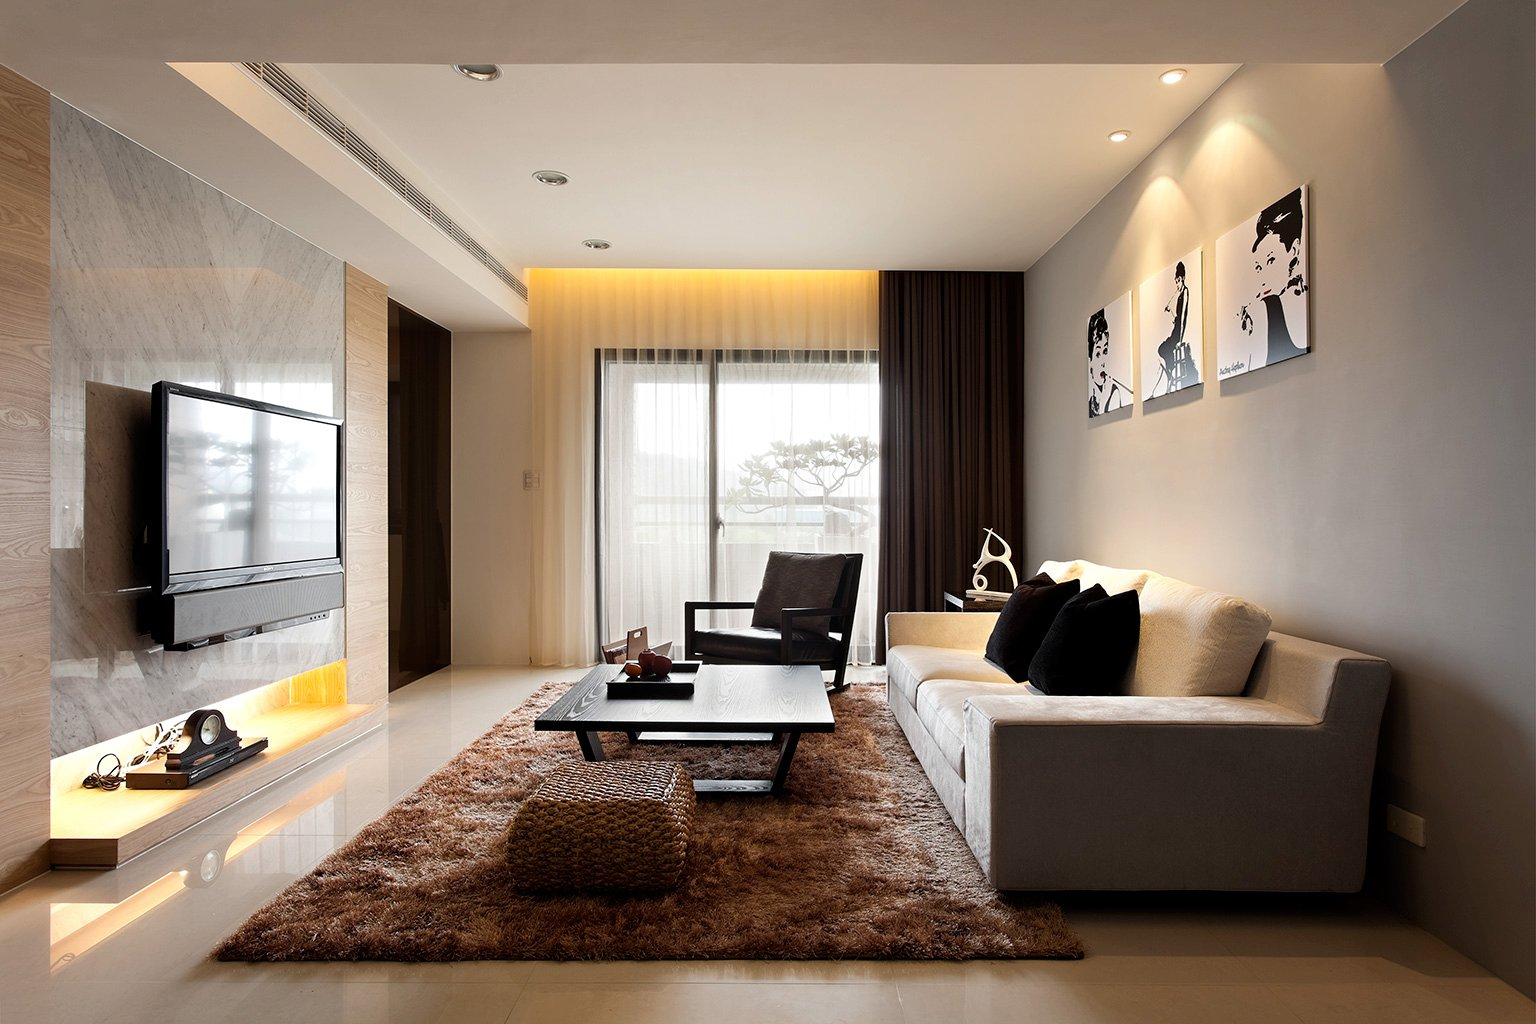 Living Room Modern Living Room Decor modern living room decor interior design ideas decor